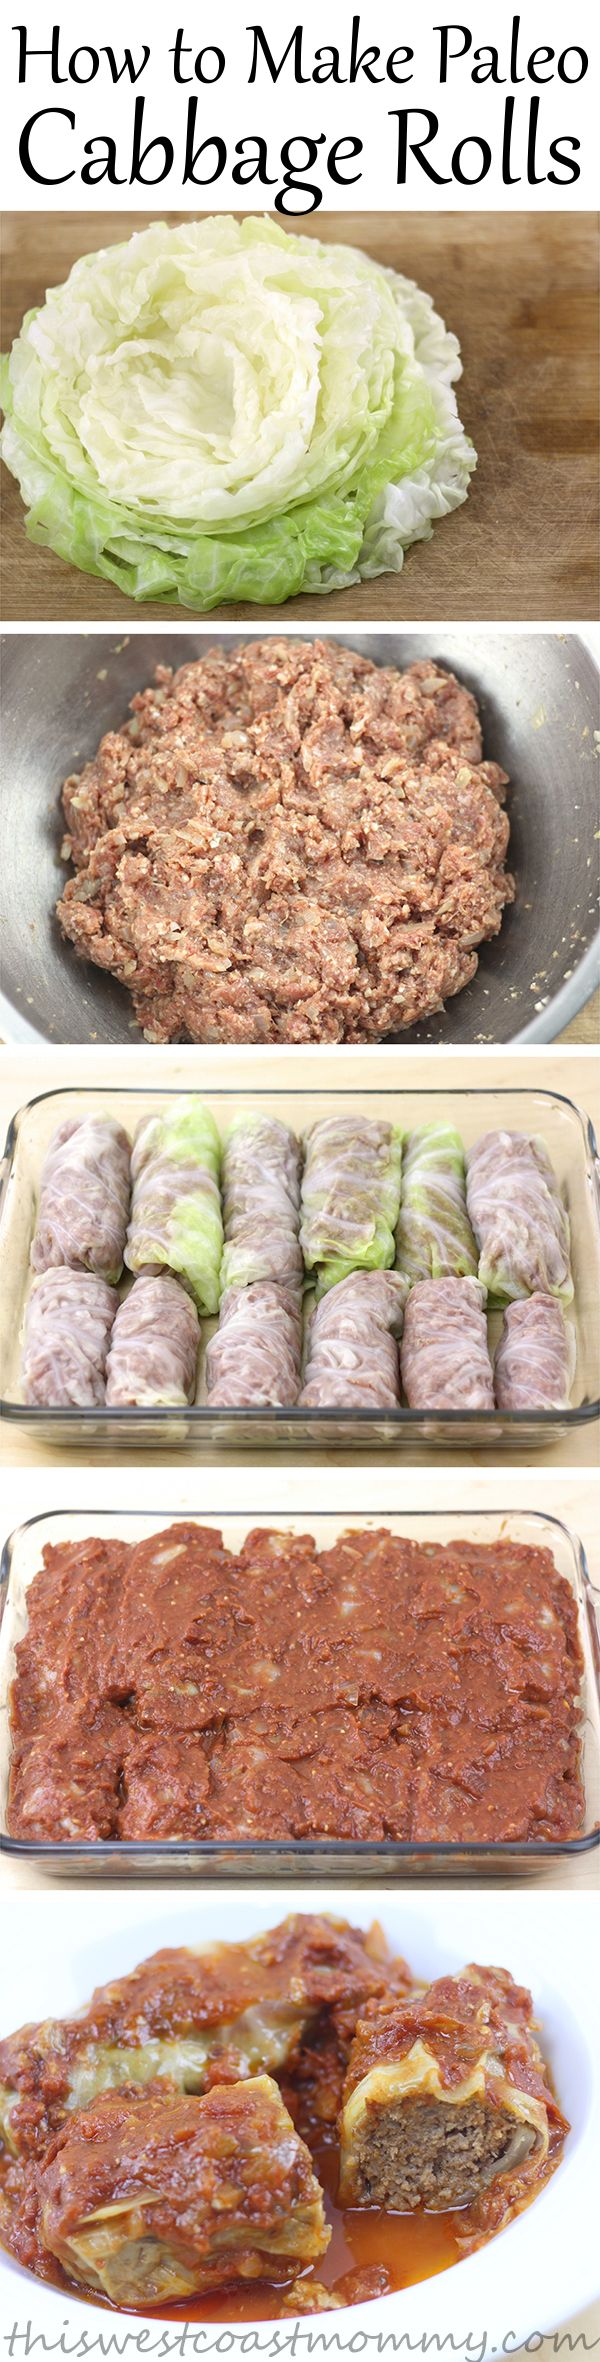 Cabbage rolls are such a comfort food. These paleo cabbage rolls take a while to make, but they're so worth it! Gluten-free, grain-free, and Whole30 recipe.                                                                                                                                                     More